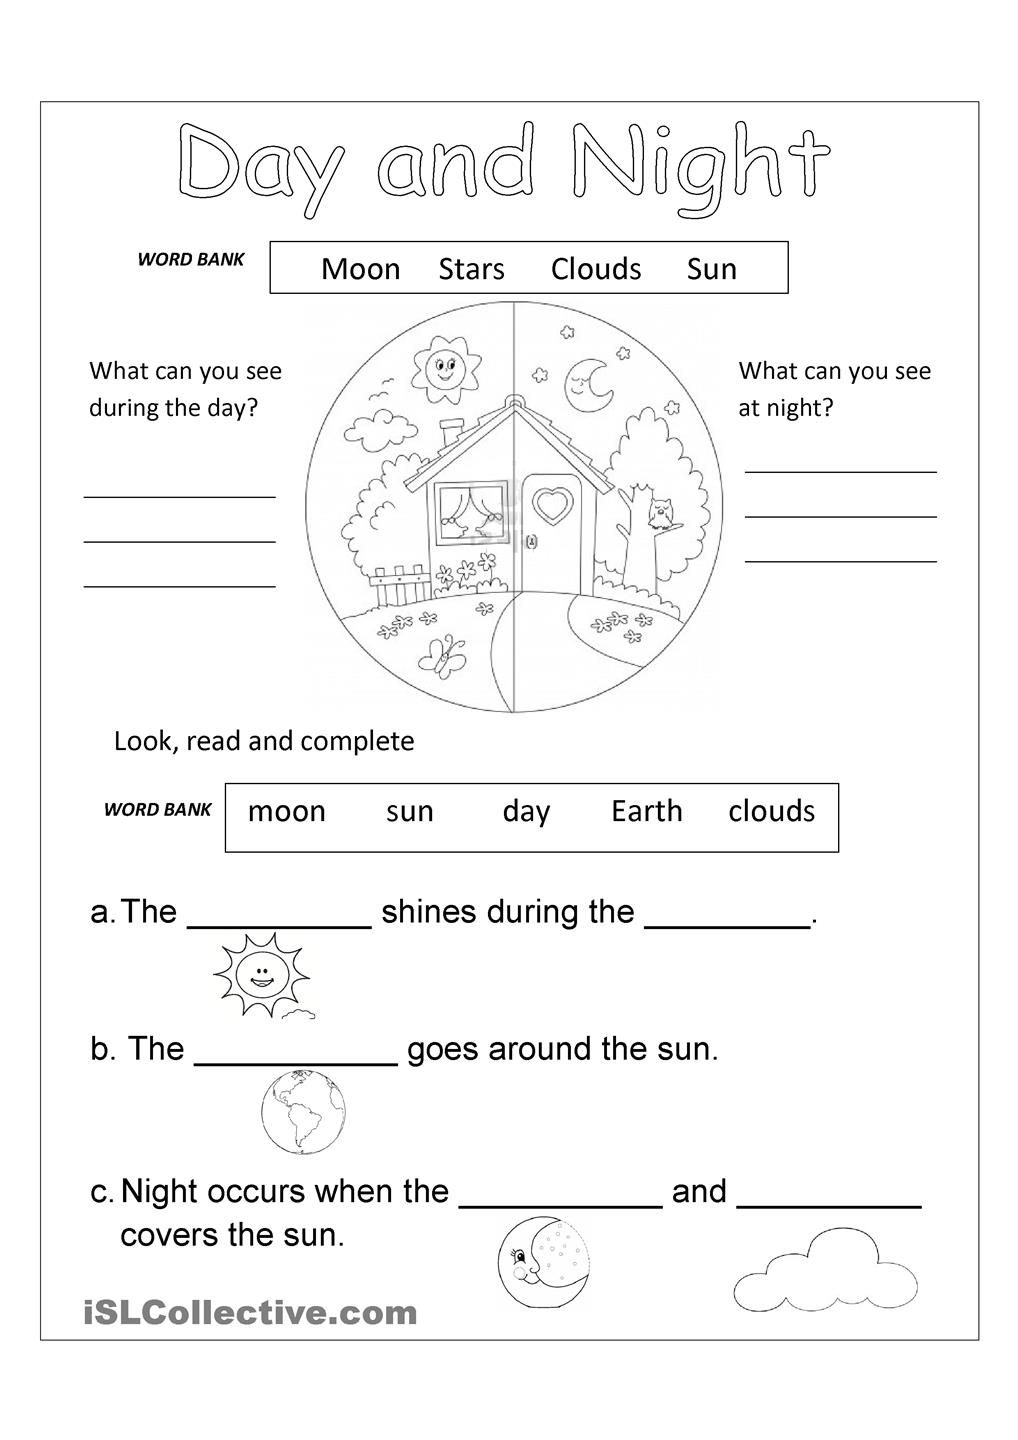 Day And Night Free Worksheet | School - New Science Standards | Day And Night Printable Worksheets